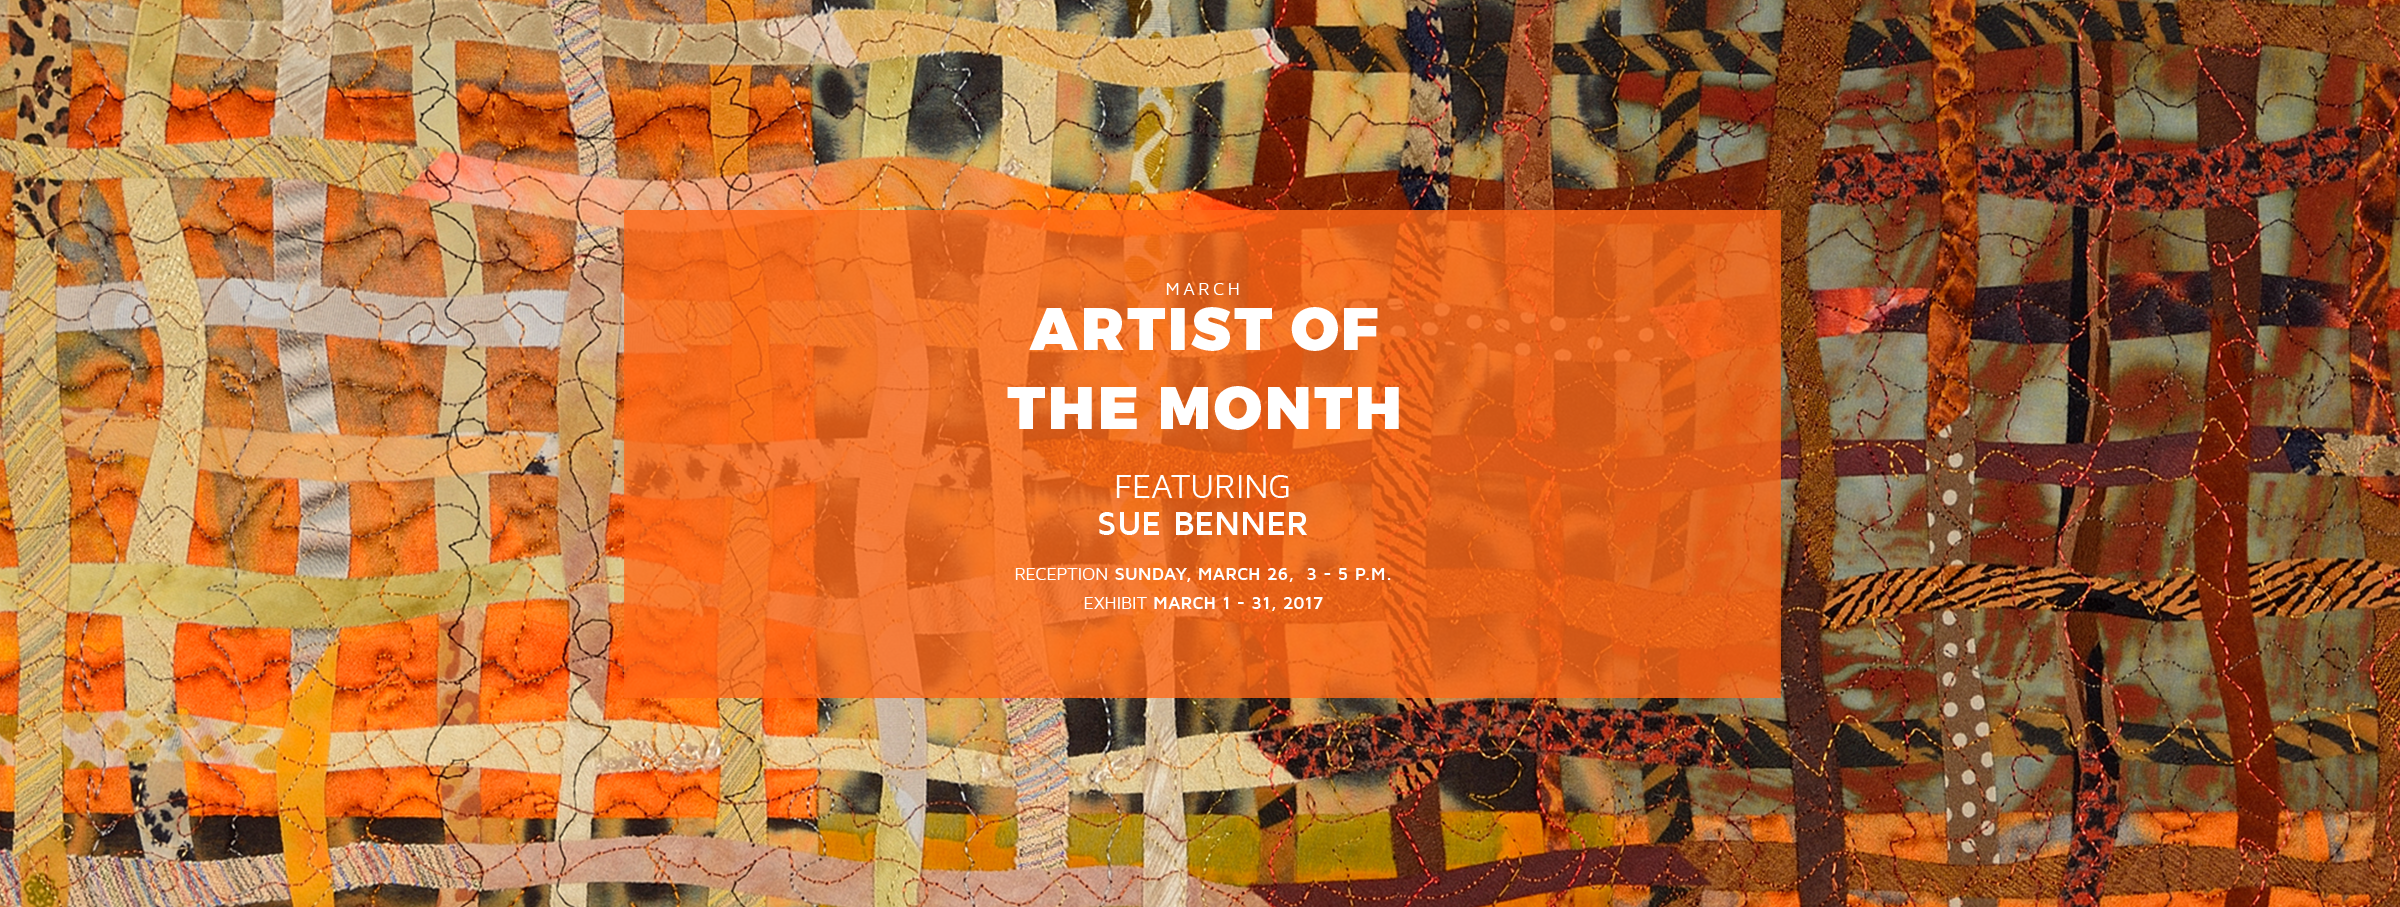 Geometric Art Exhibits in Dallas: Sue Benner at the Museum of Geometric and MADI Art